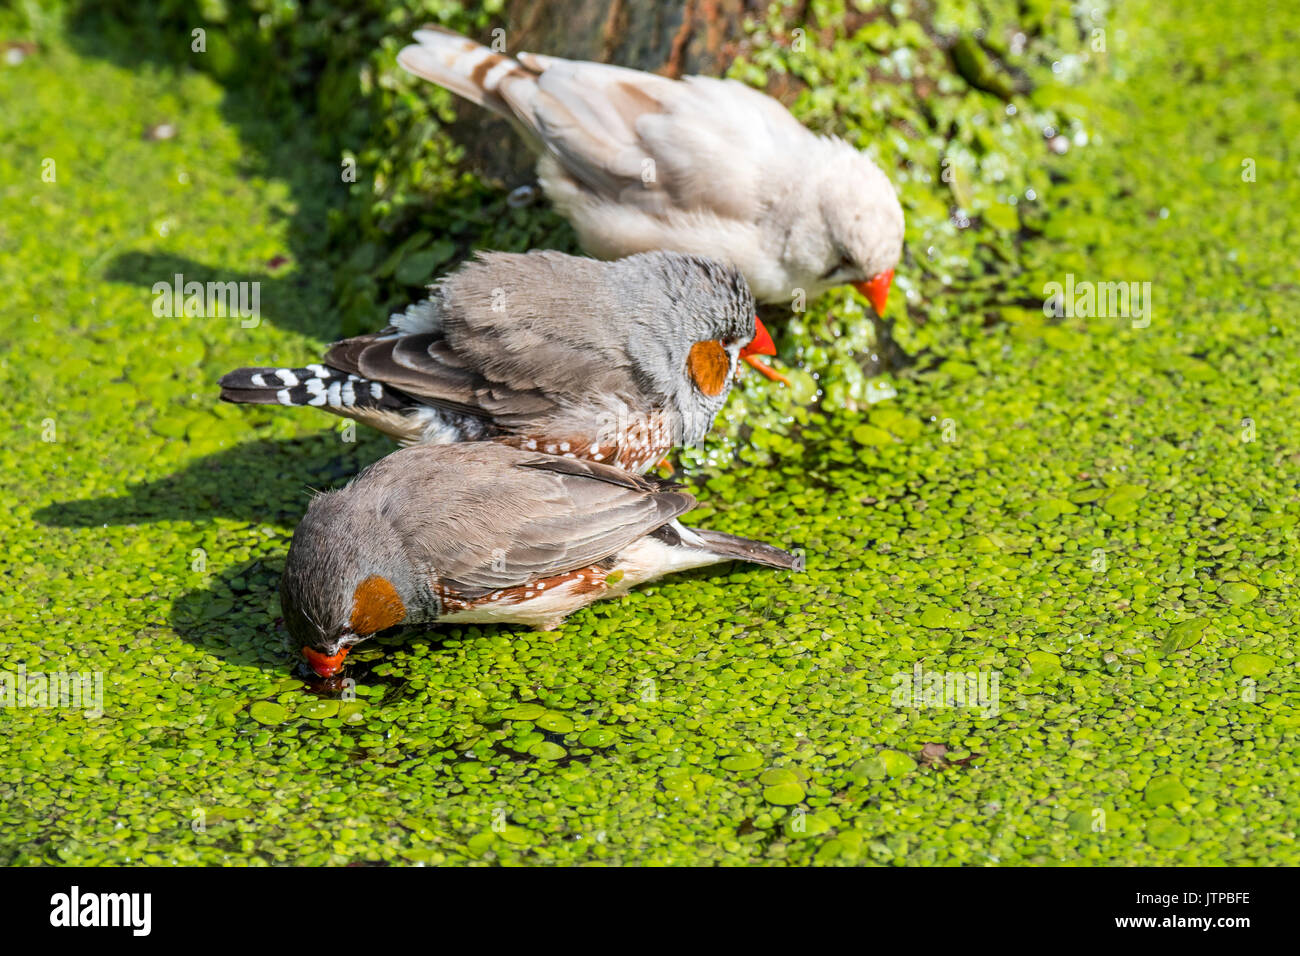 Three zebra finches (Taeniopygia guttata / Poephila guttata) native to Australia cooling down and drinking water from pond on a hot day - Stock Image